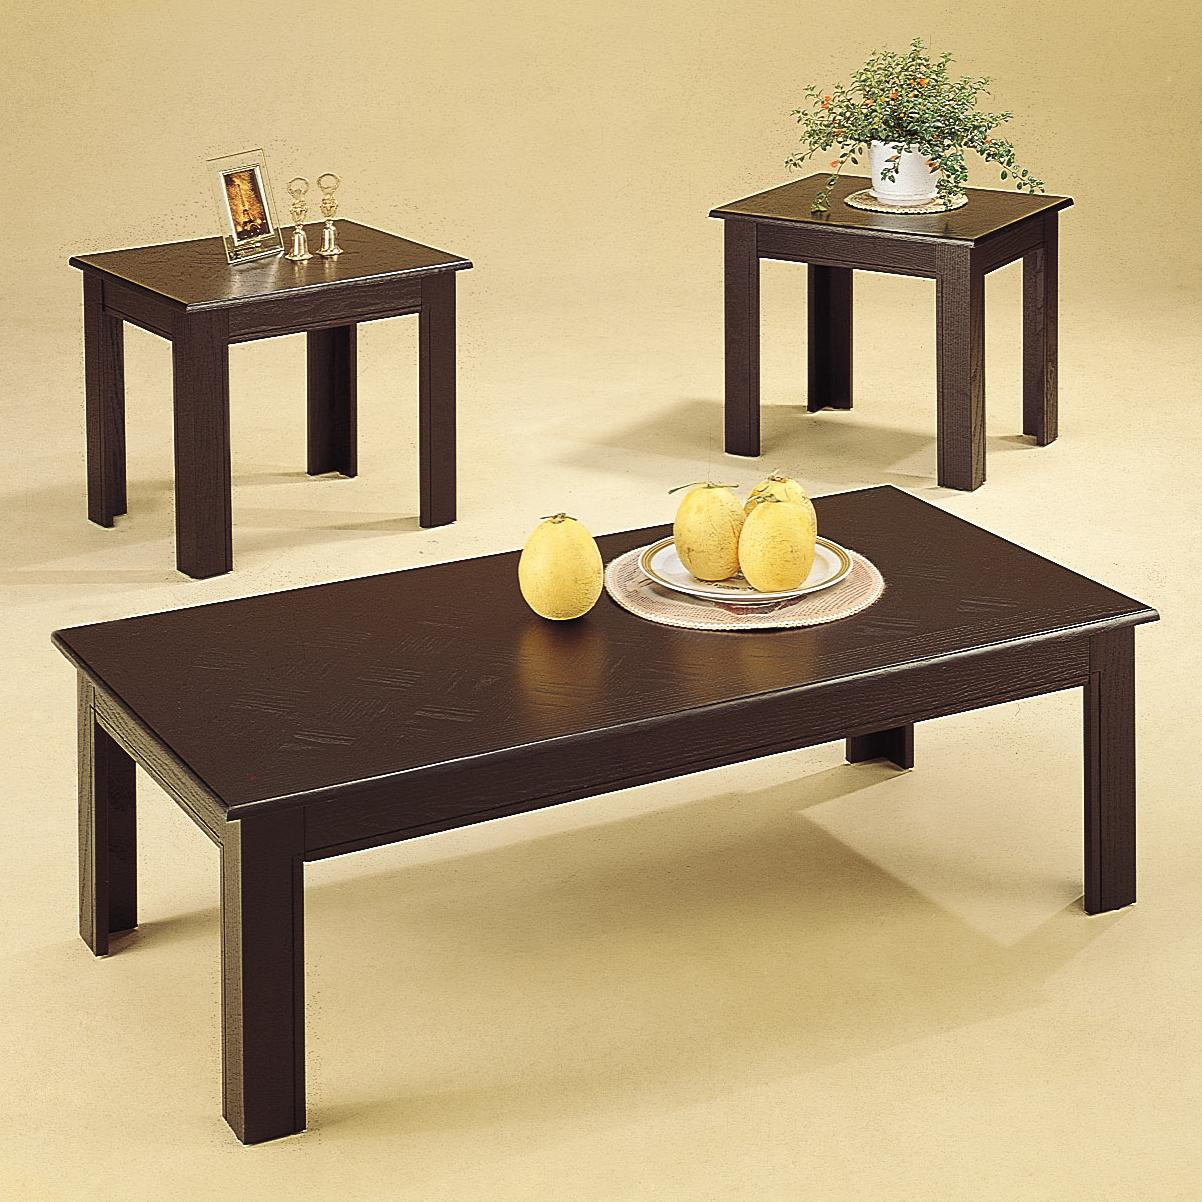 Coaster Occasional Table Sets 3 Piece Table Set - Item Number: 5169